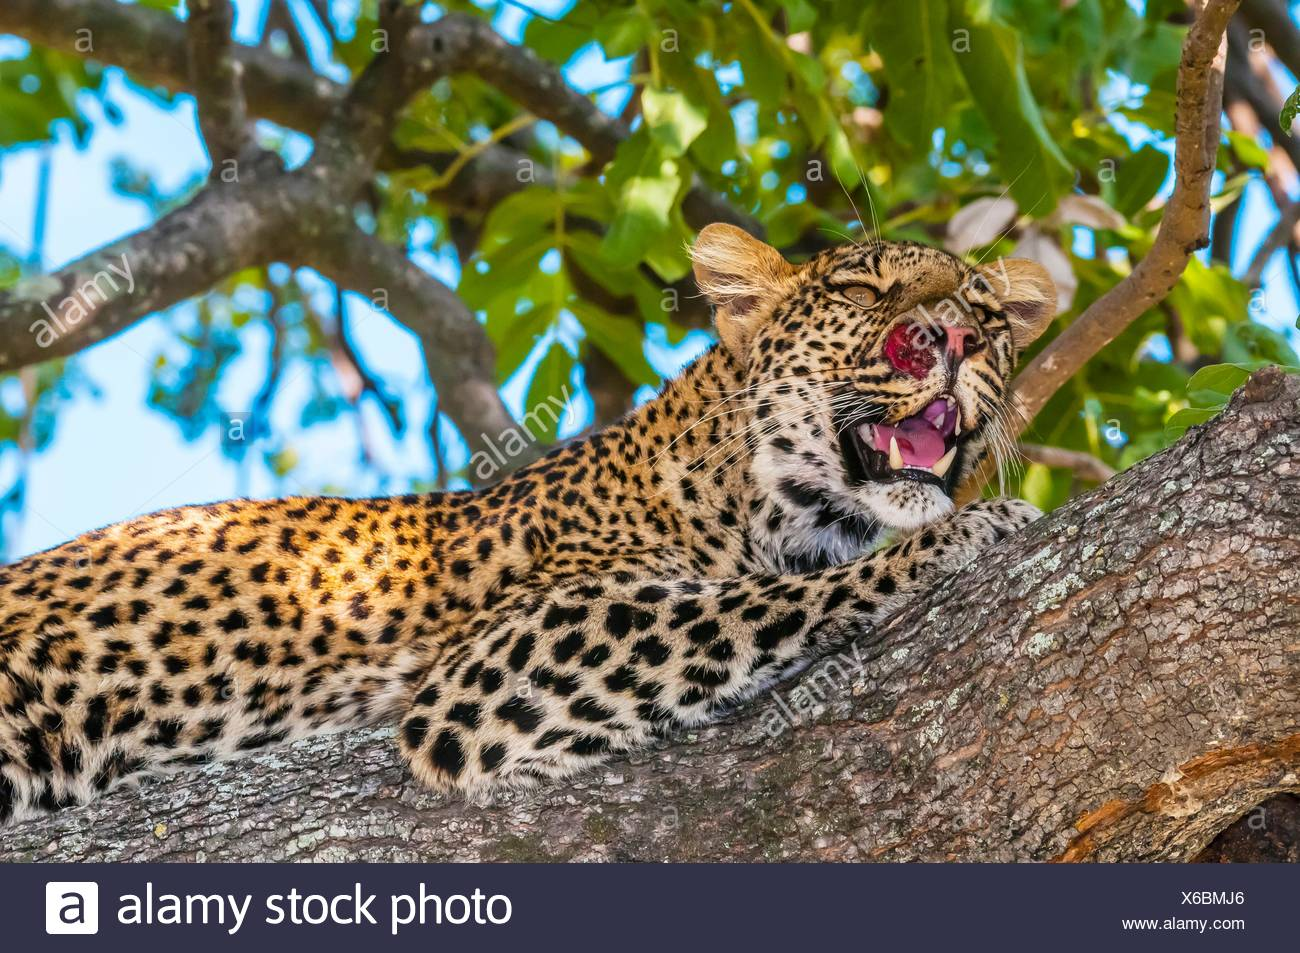 Leopard in a tree, Kwando Concession, Linyanti Marshes, Botswana. Stock Photo